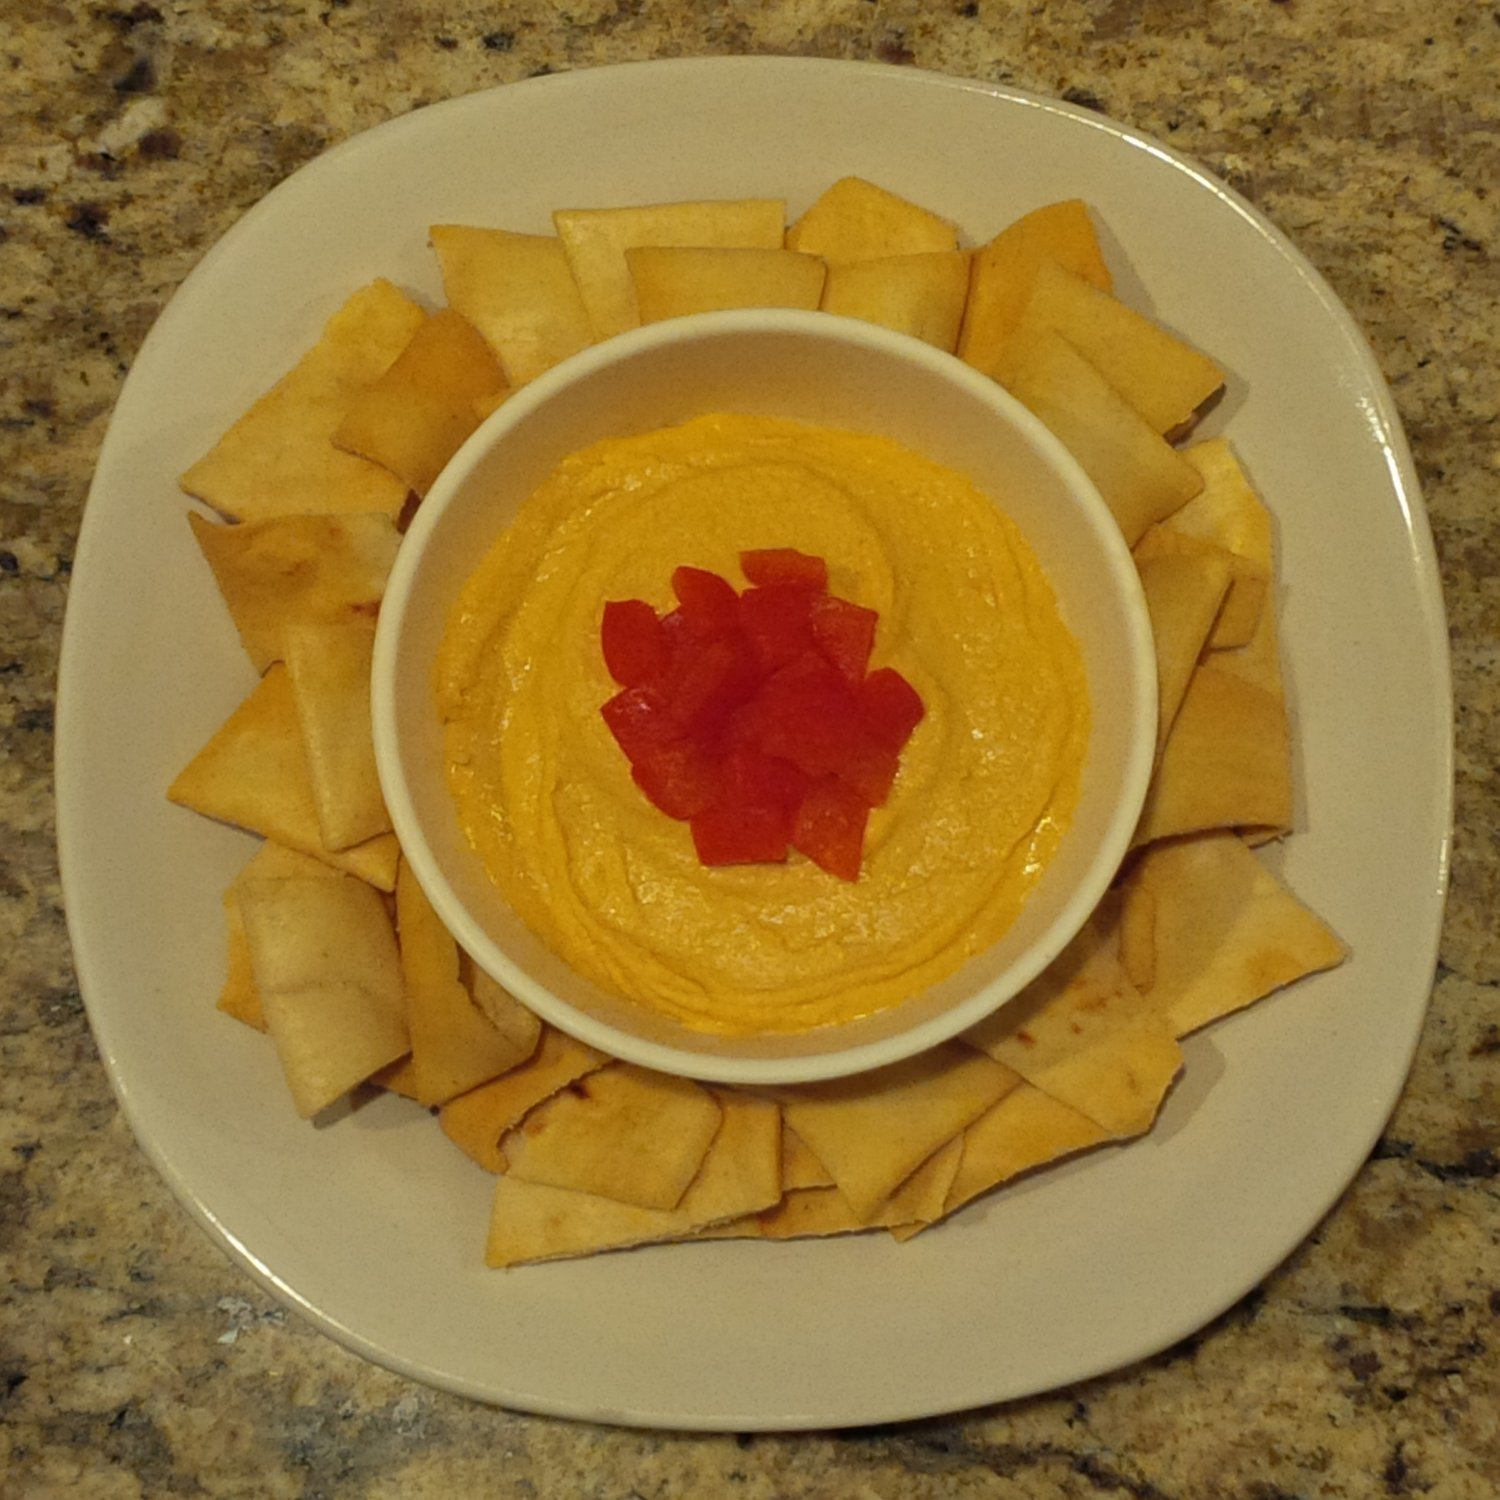 Family Meal Deal - Organic Roasted Red Pepper Hummus